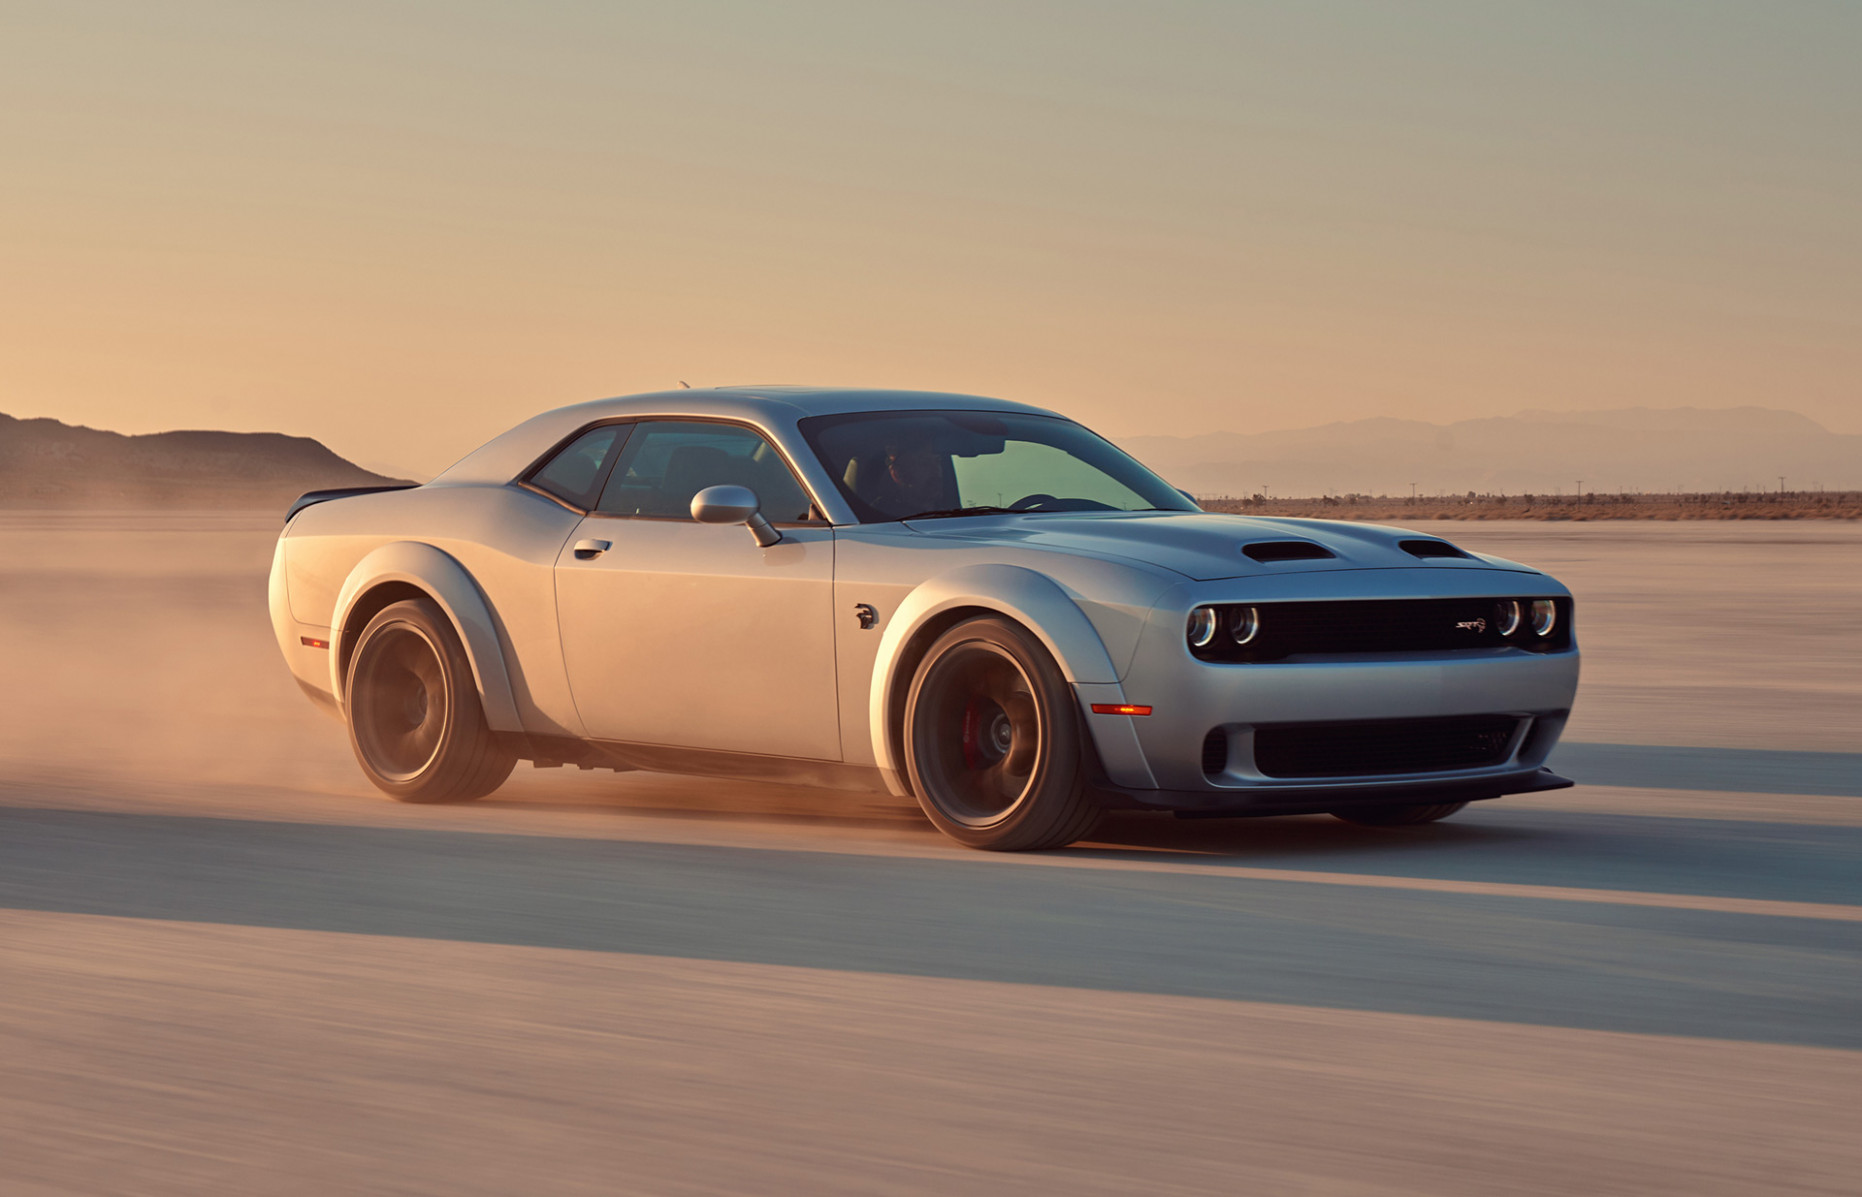 8 Dodge Challenger pricing revealed, Redeye starts at $8,8 - dodge hellcat redeye 2020